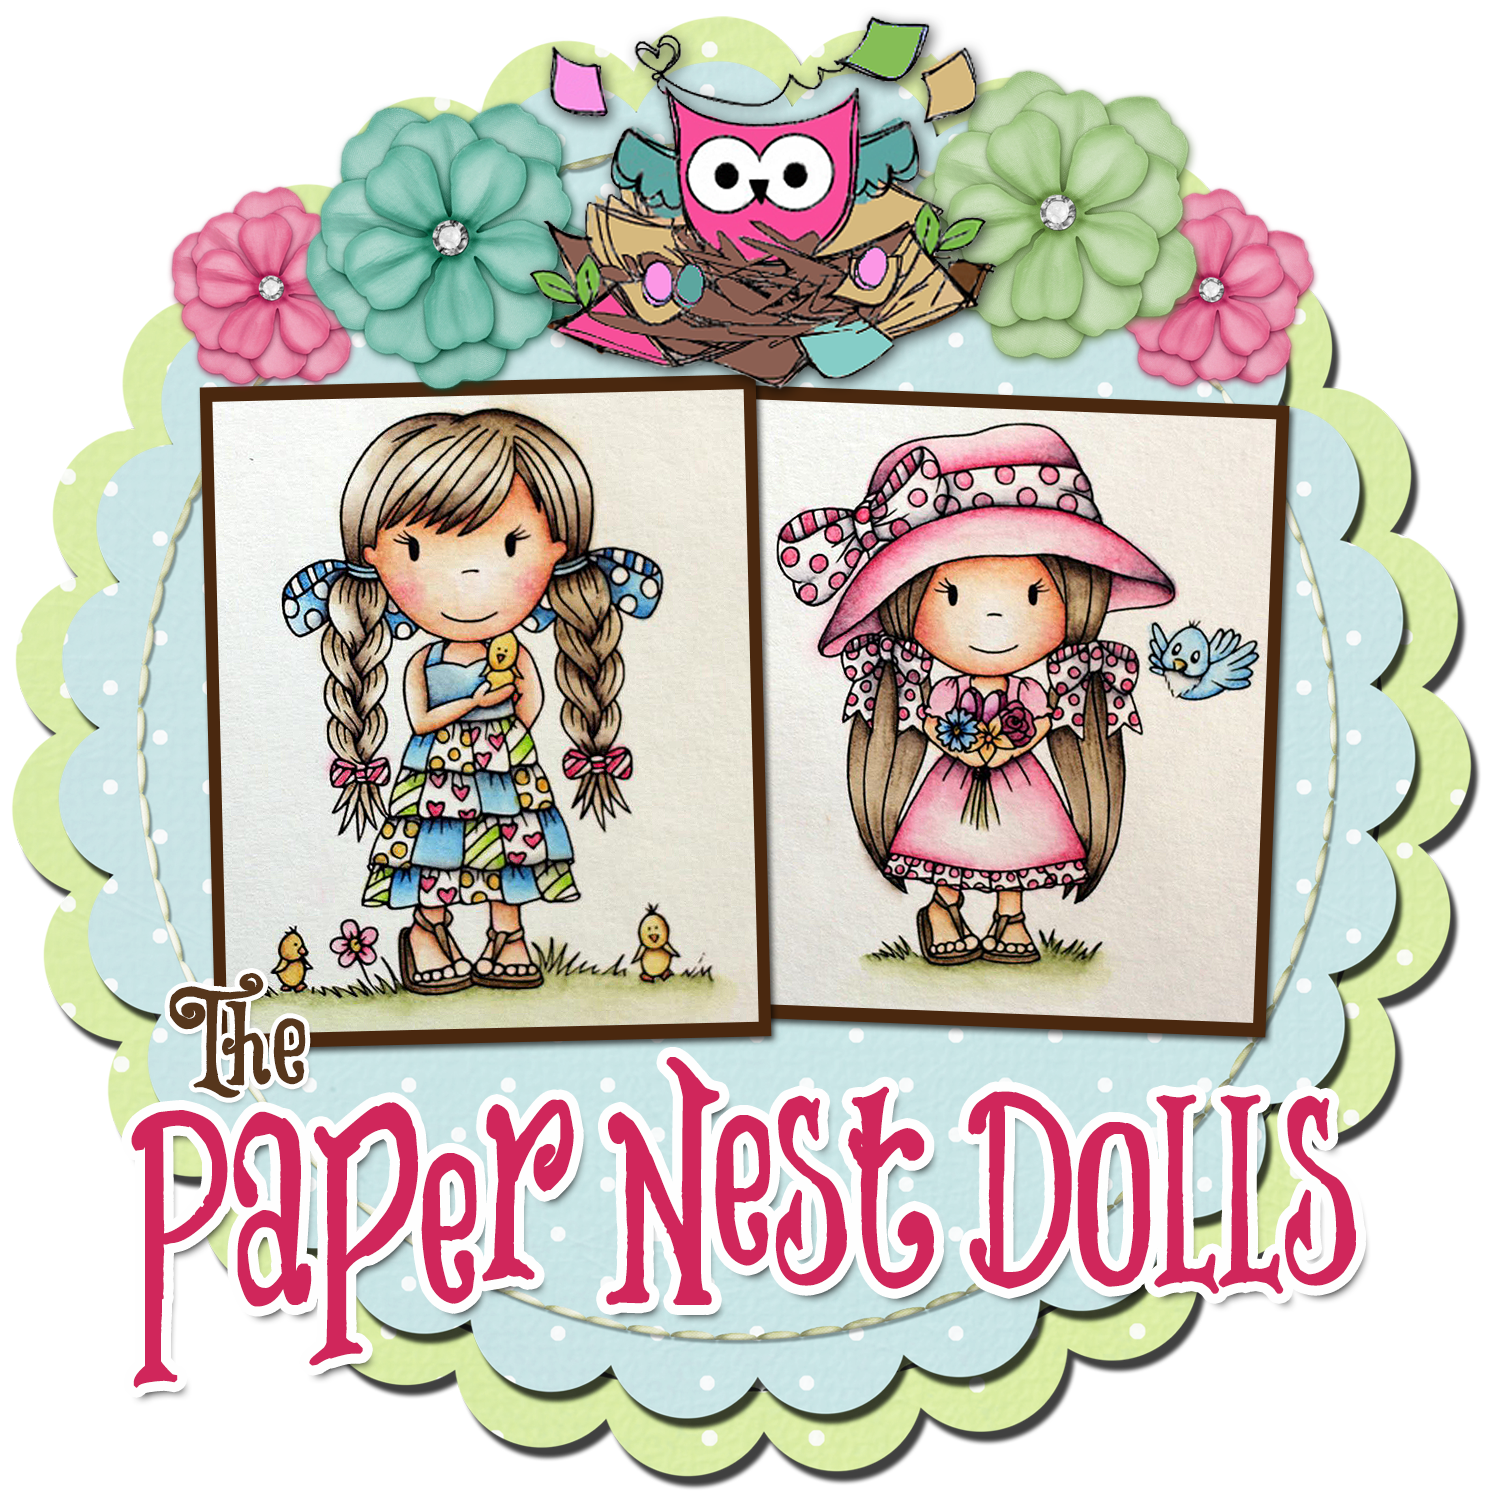 Ex-DT member of Paper Nest Dolls Stamp